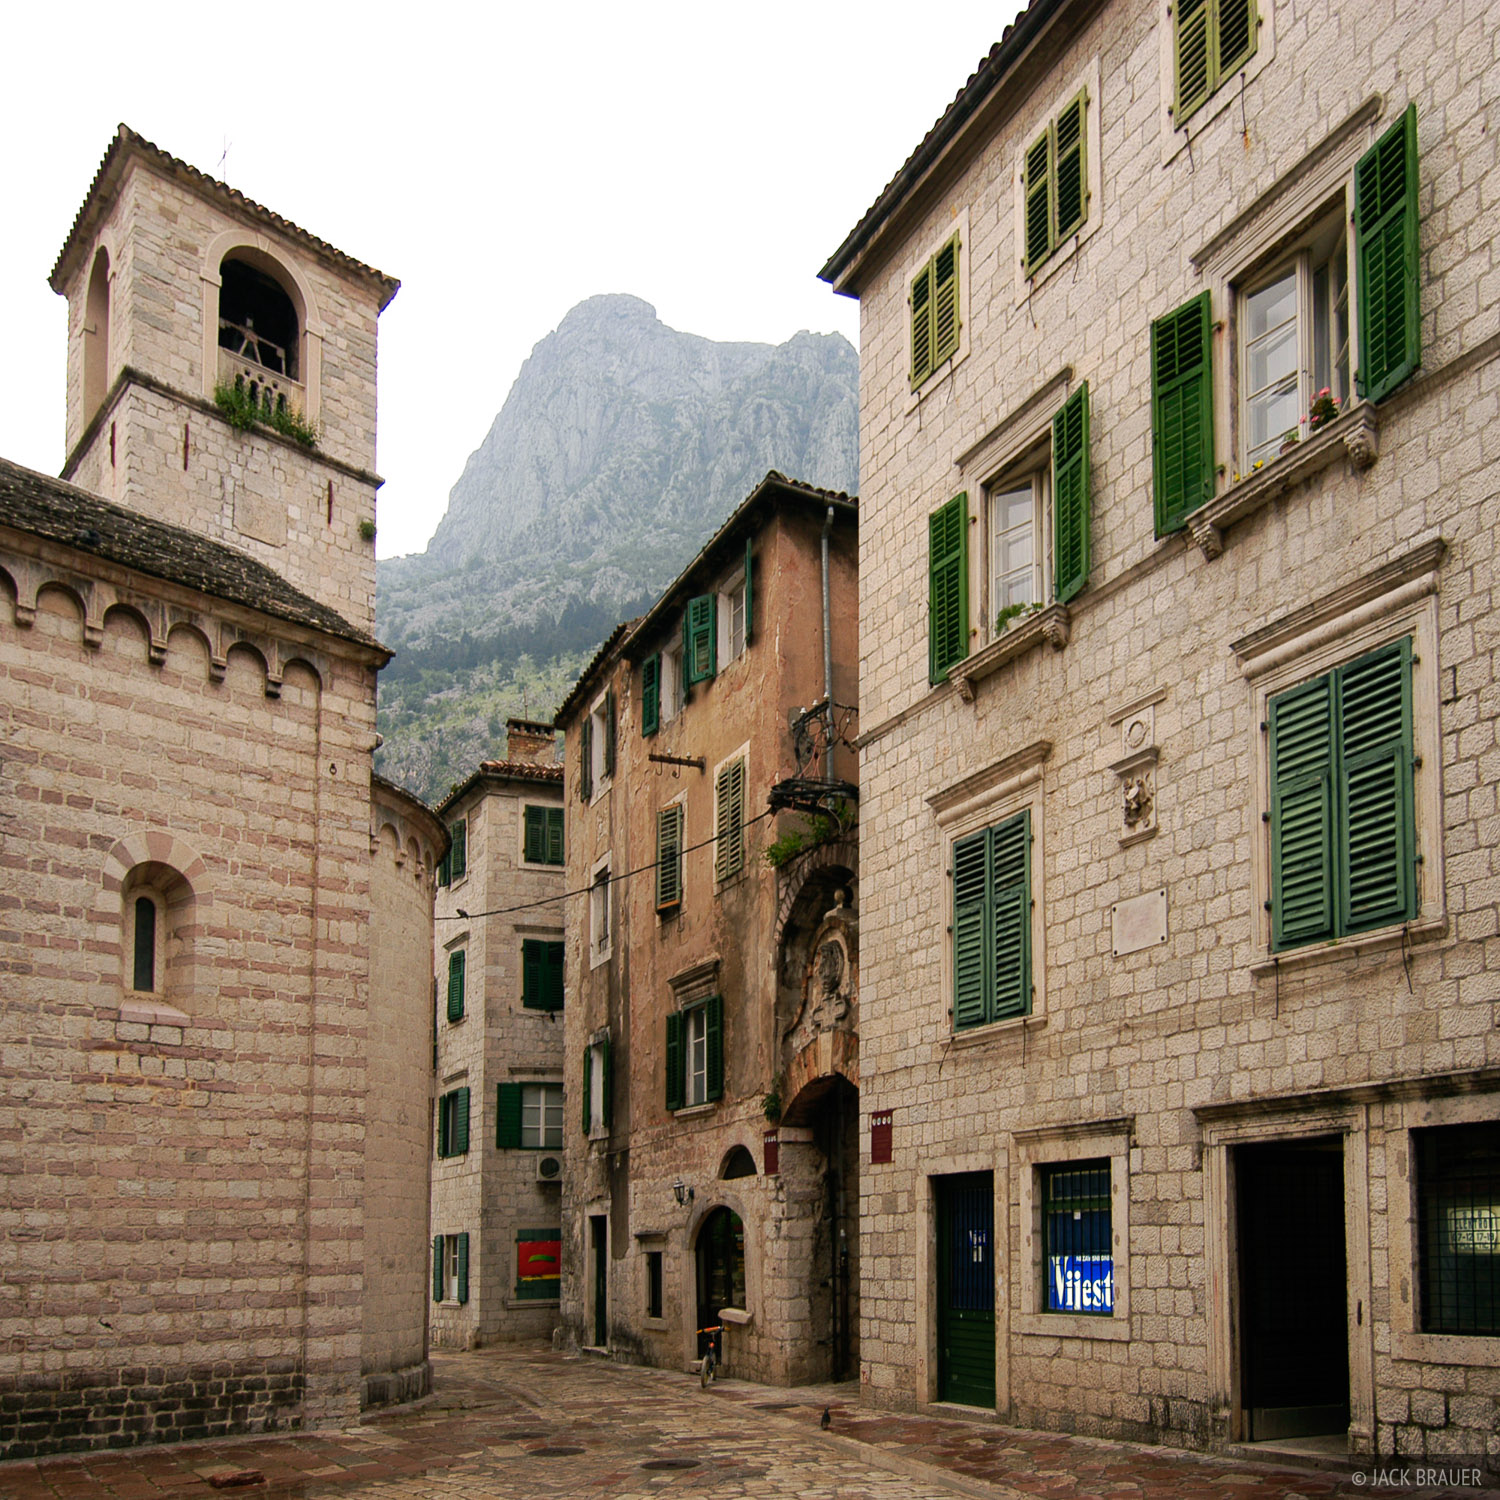 Kotor, walled city, Montenegro, photo